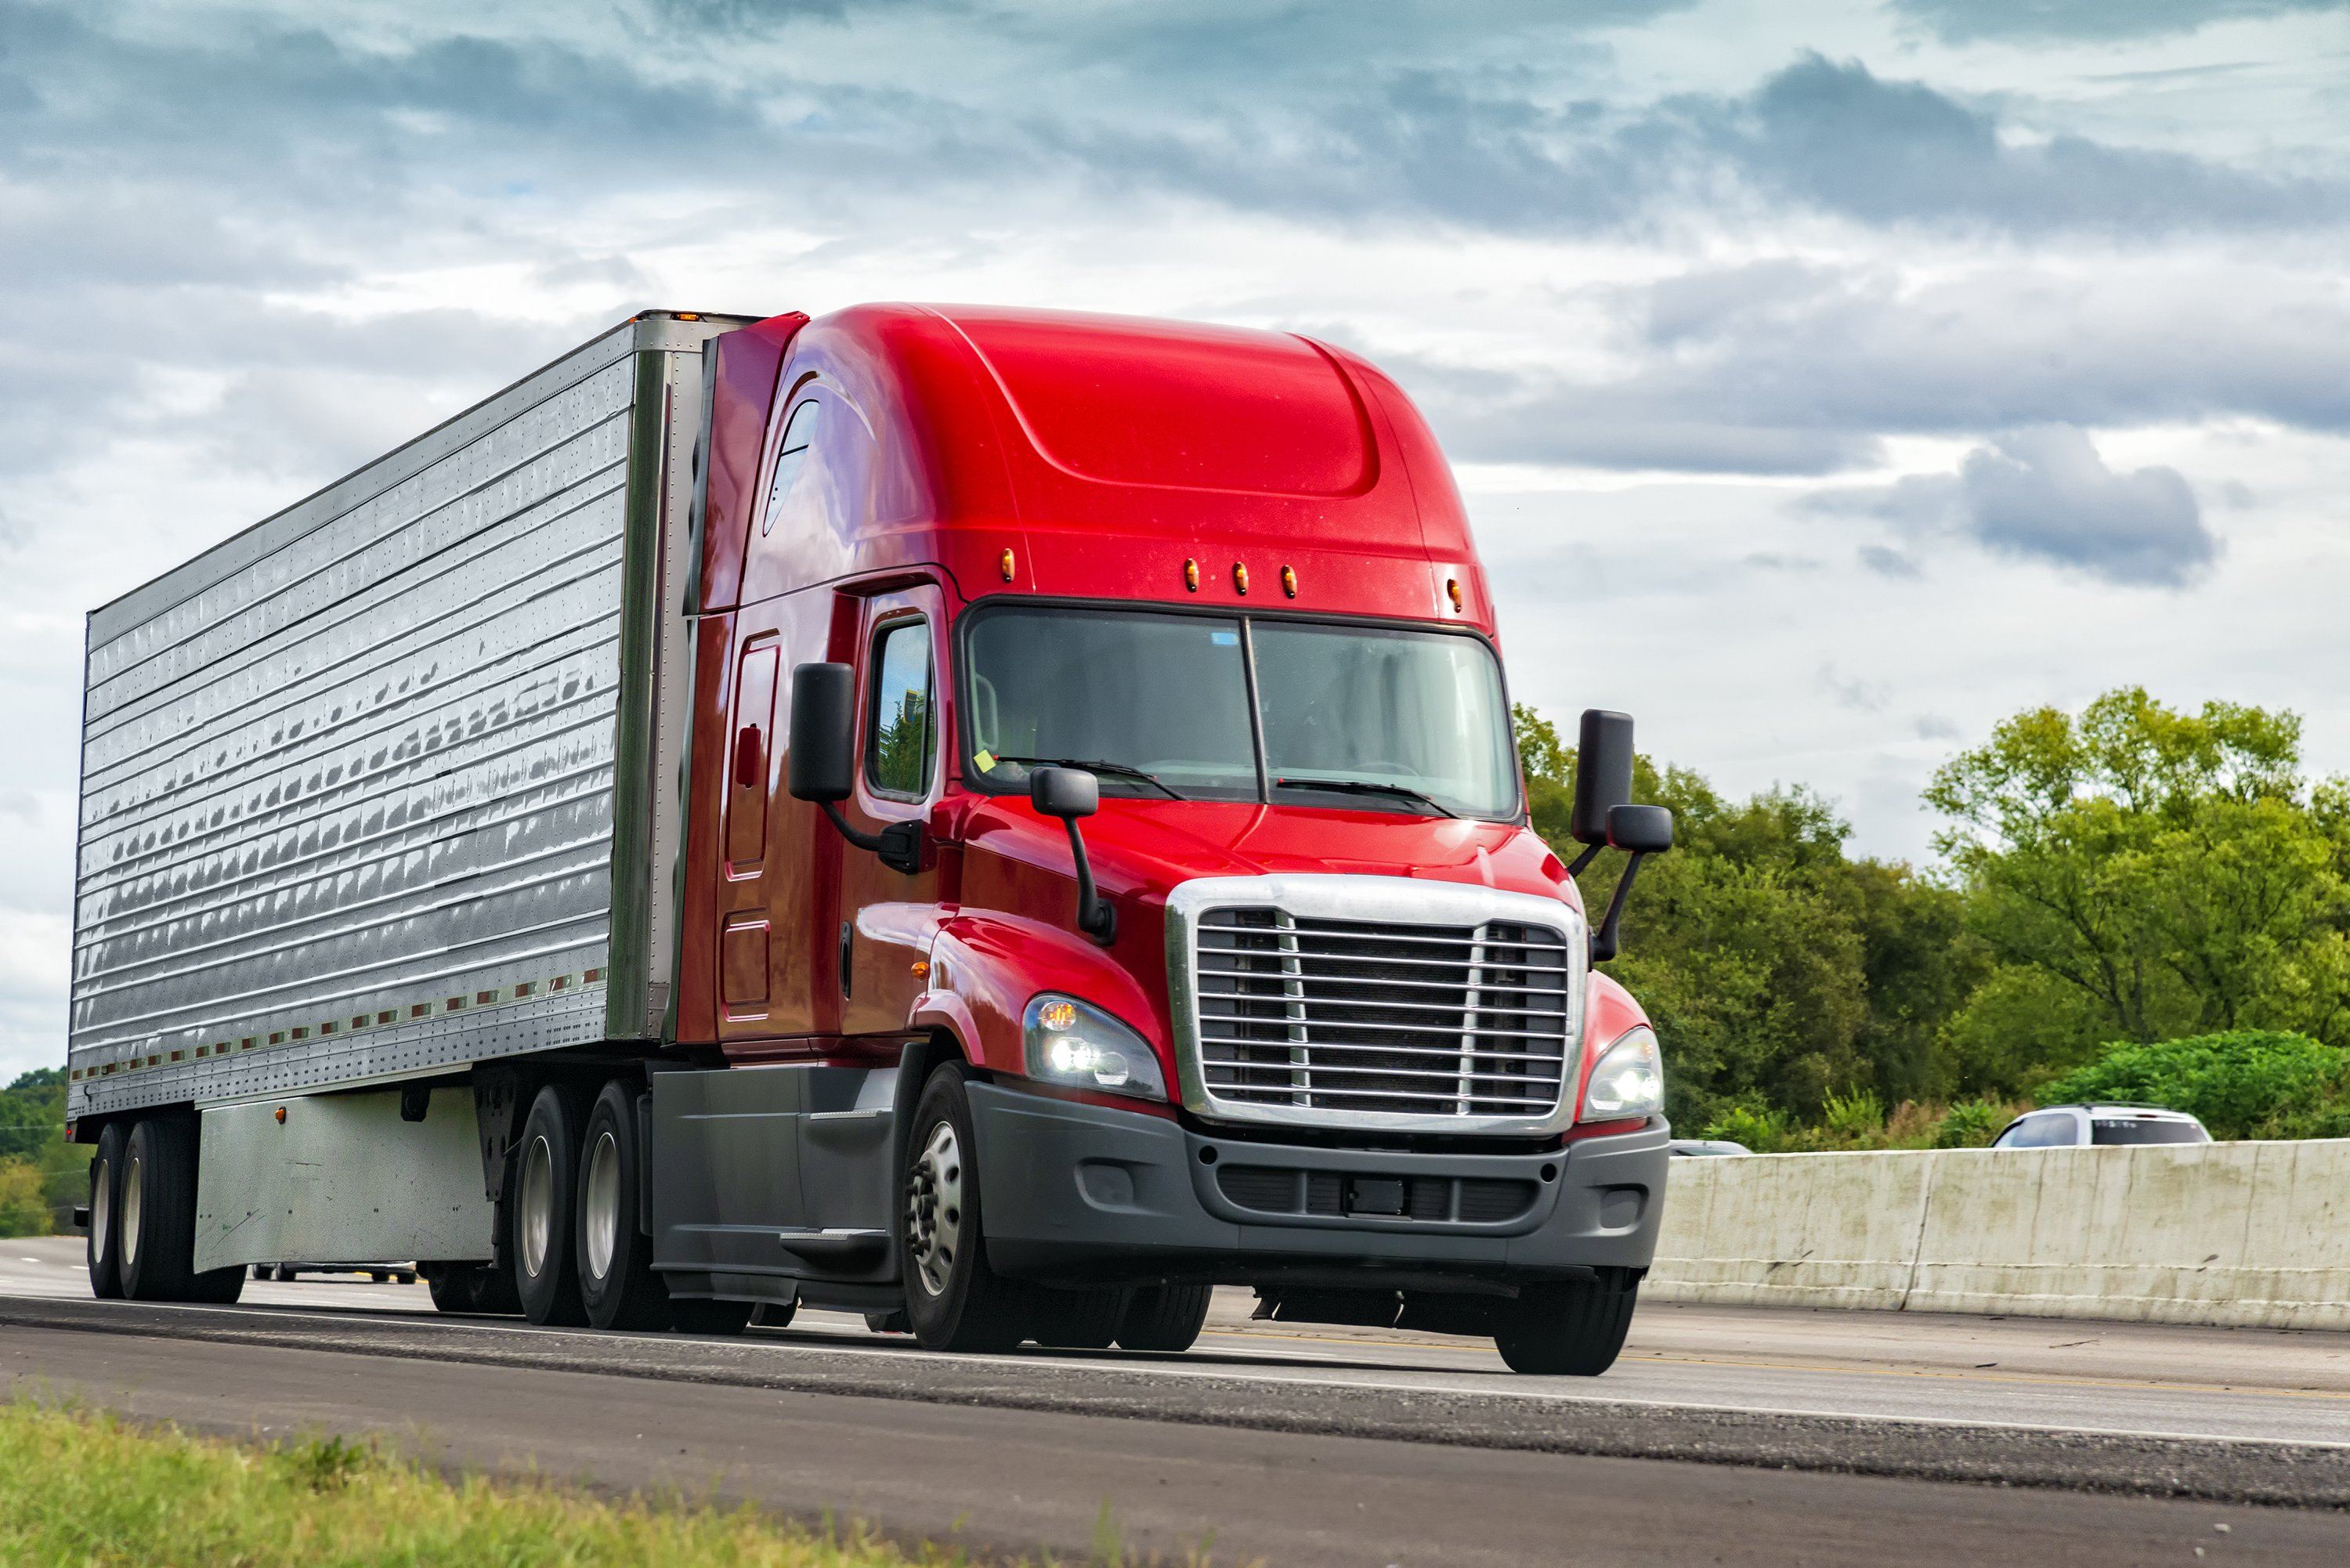 2020 Best Truckload Companies (And How to Choose)